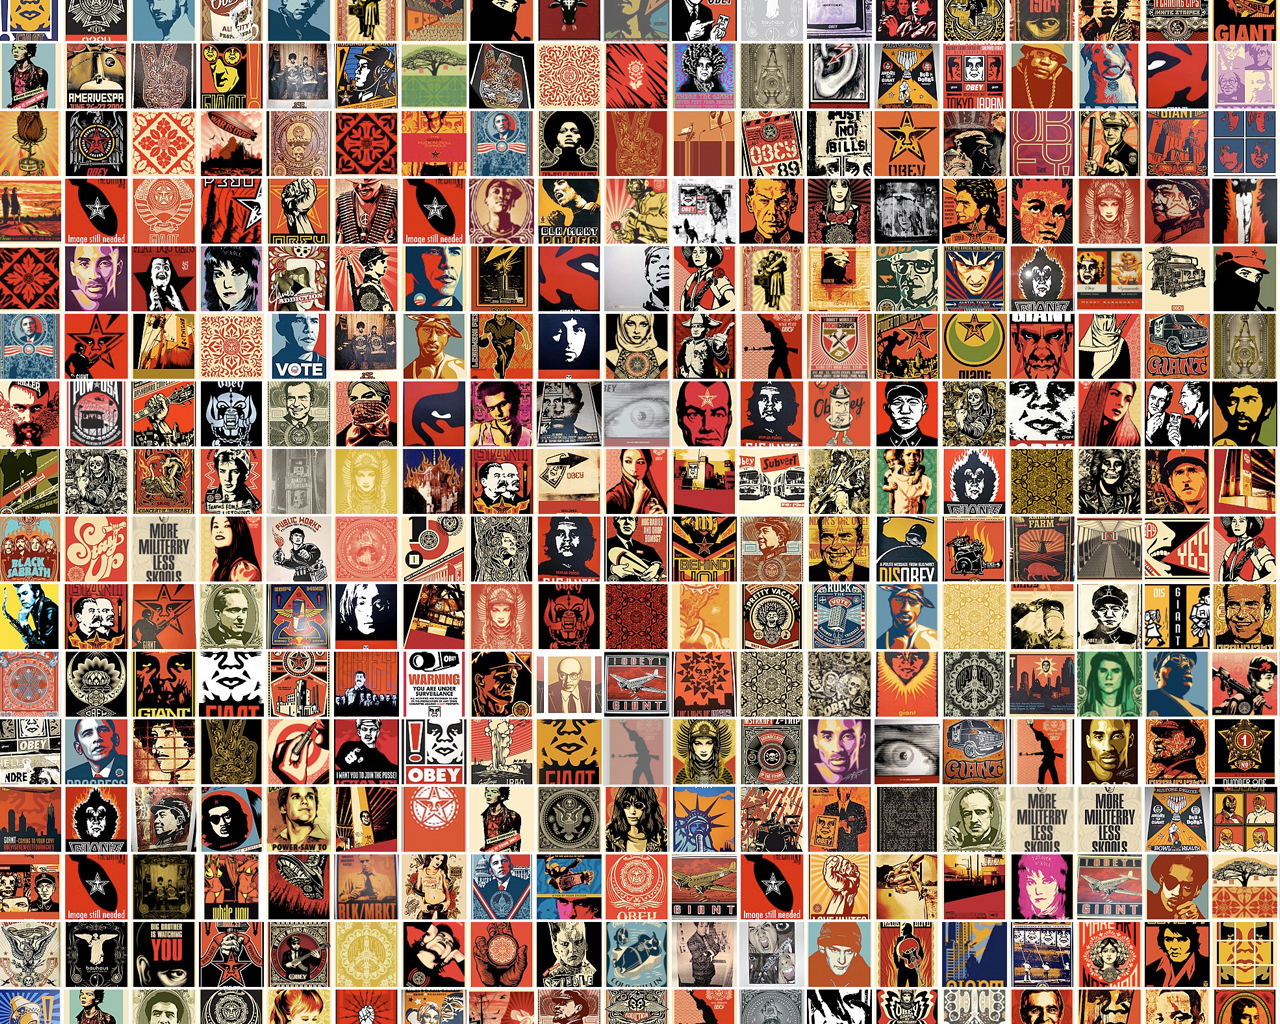 Obey Giant Collage Wallpaper 1280x1024